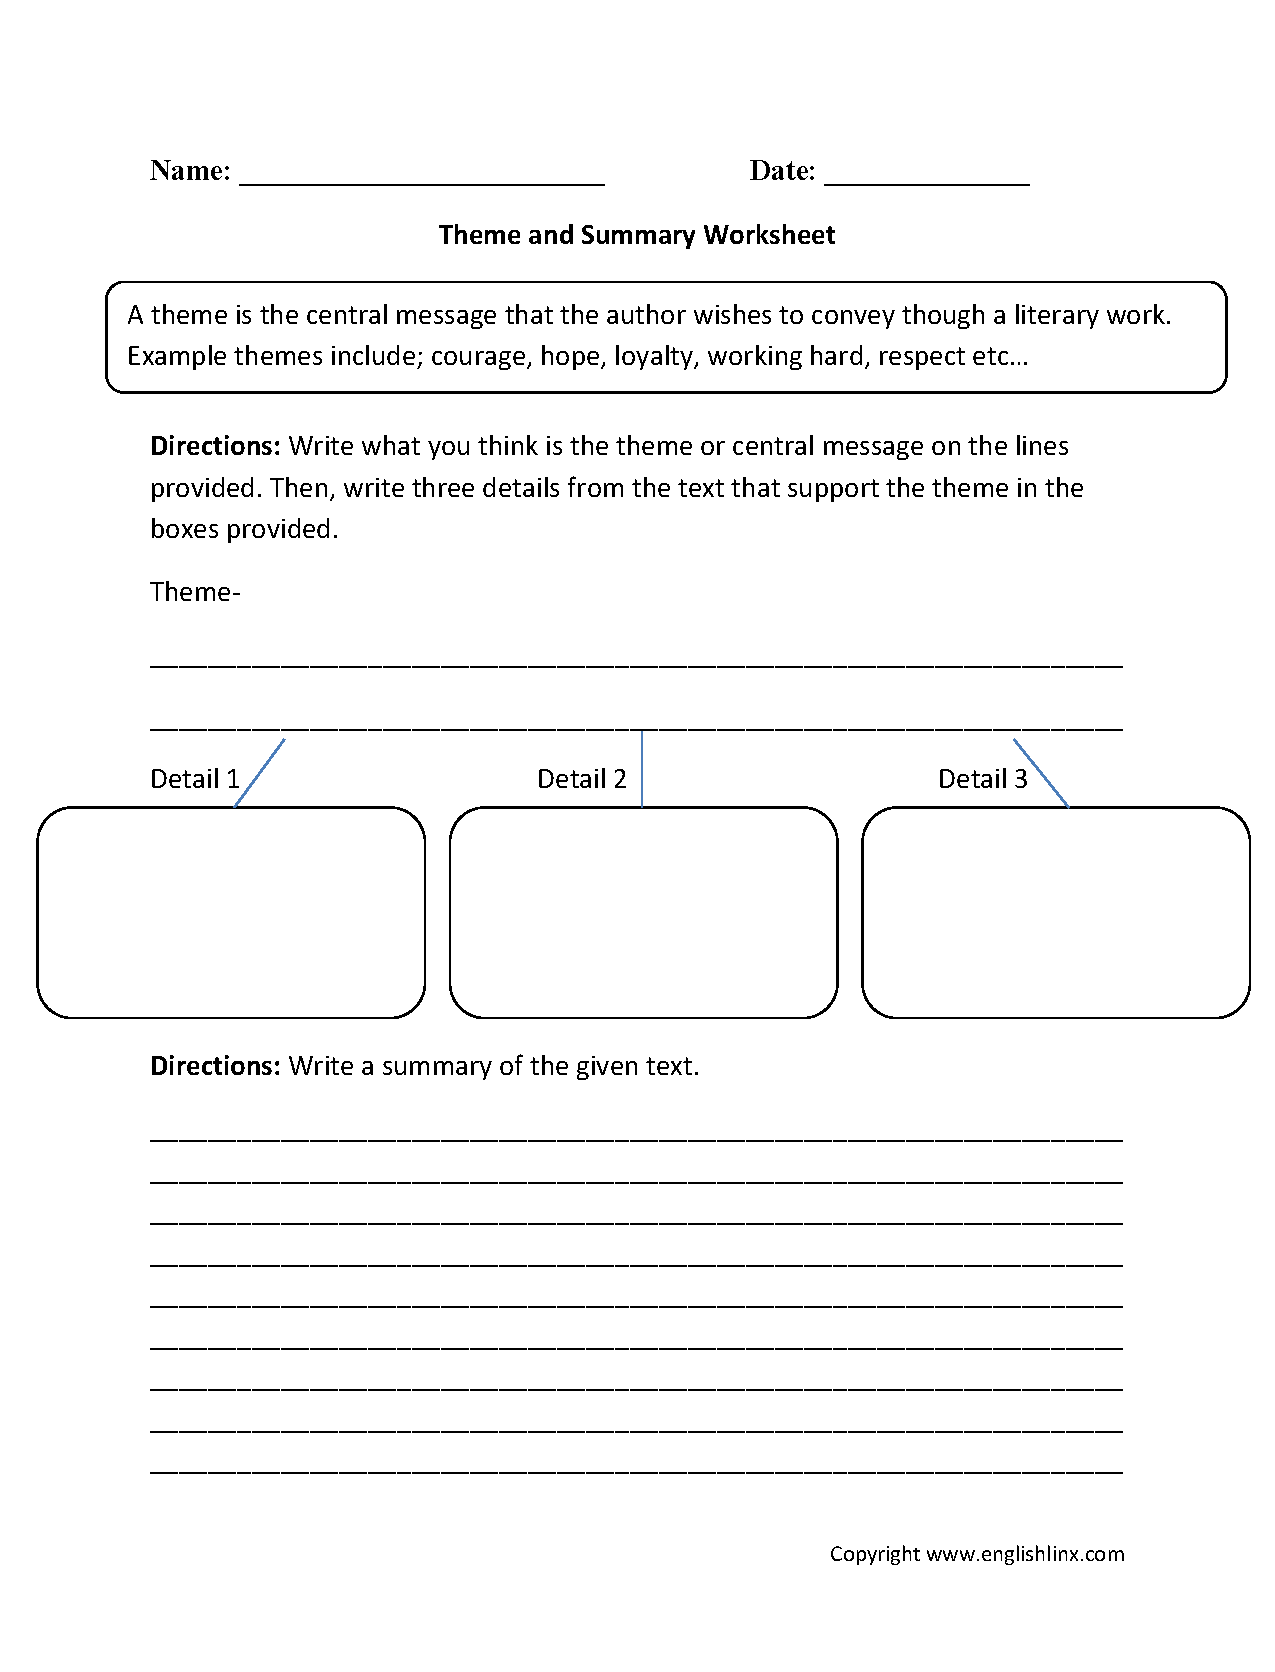 Theme Worksheets – Finding Theme Worksheets